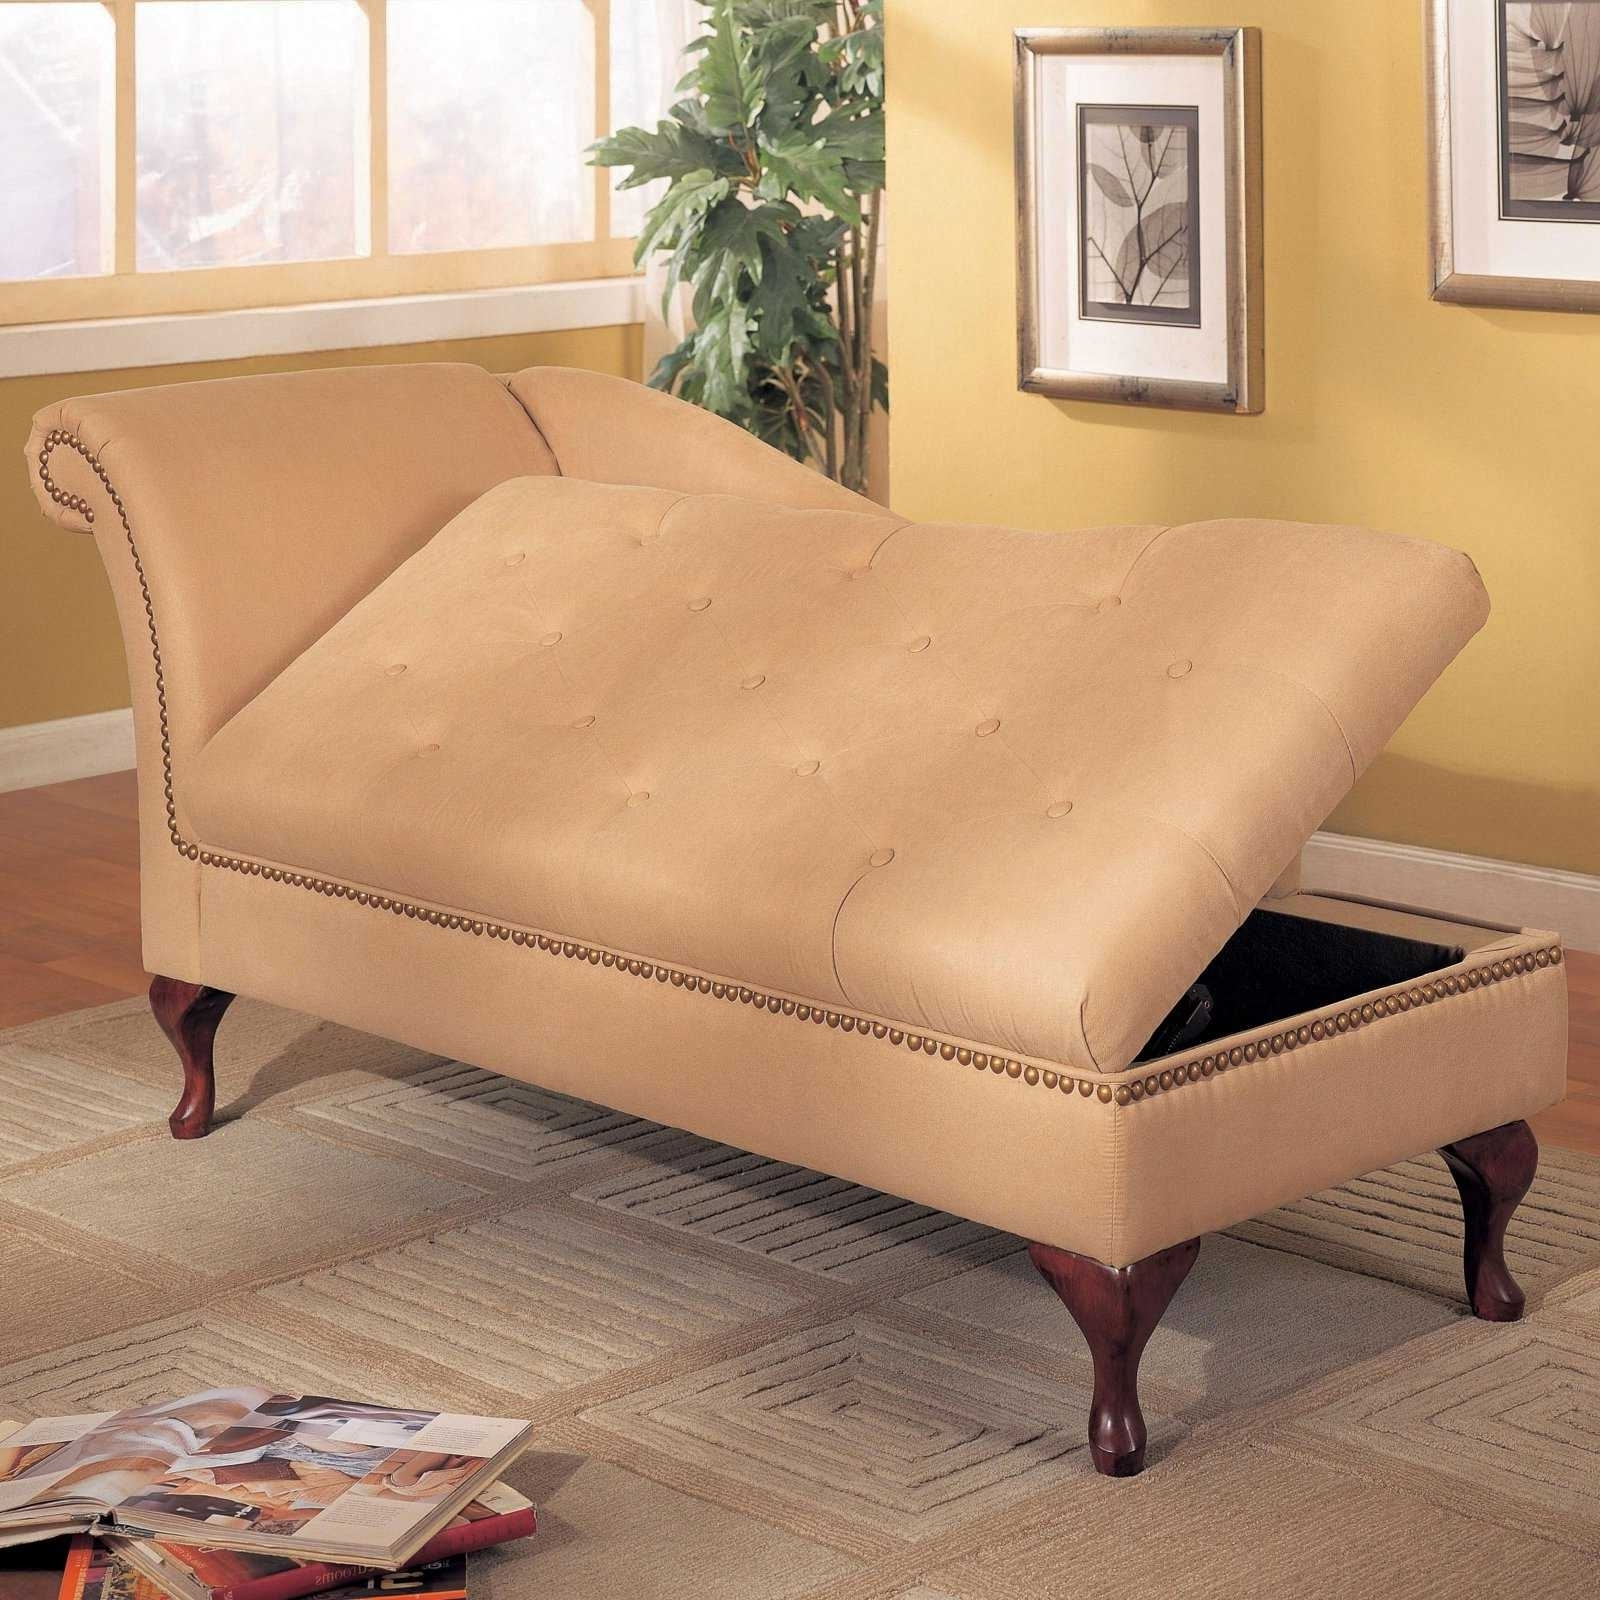 Indoor Chaise Lounge Chairs With Regard To Famous Lounge Chair : Outdoor White Leather Chaise Lounge Indoor Chaise (Gallery 7 of 15)